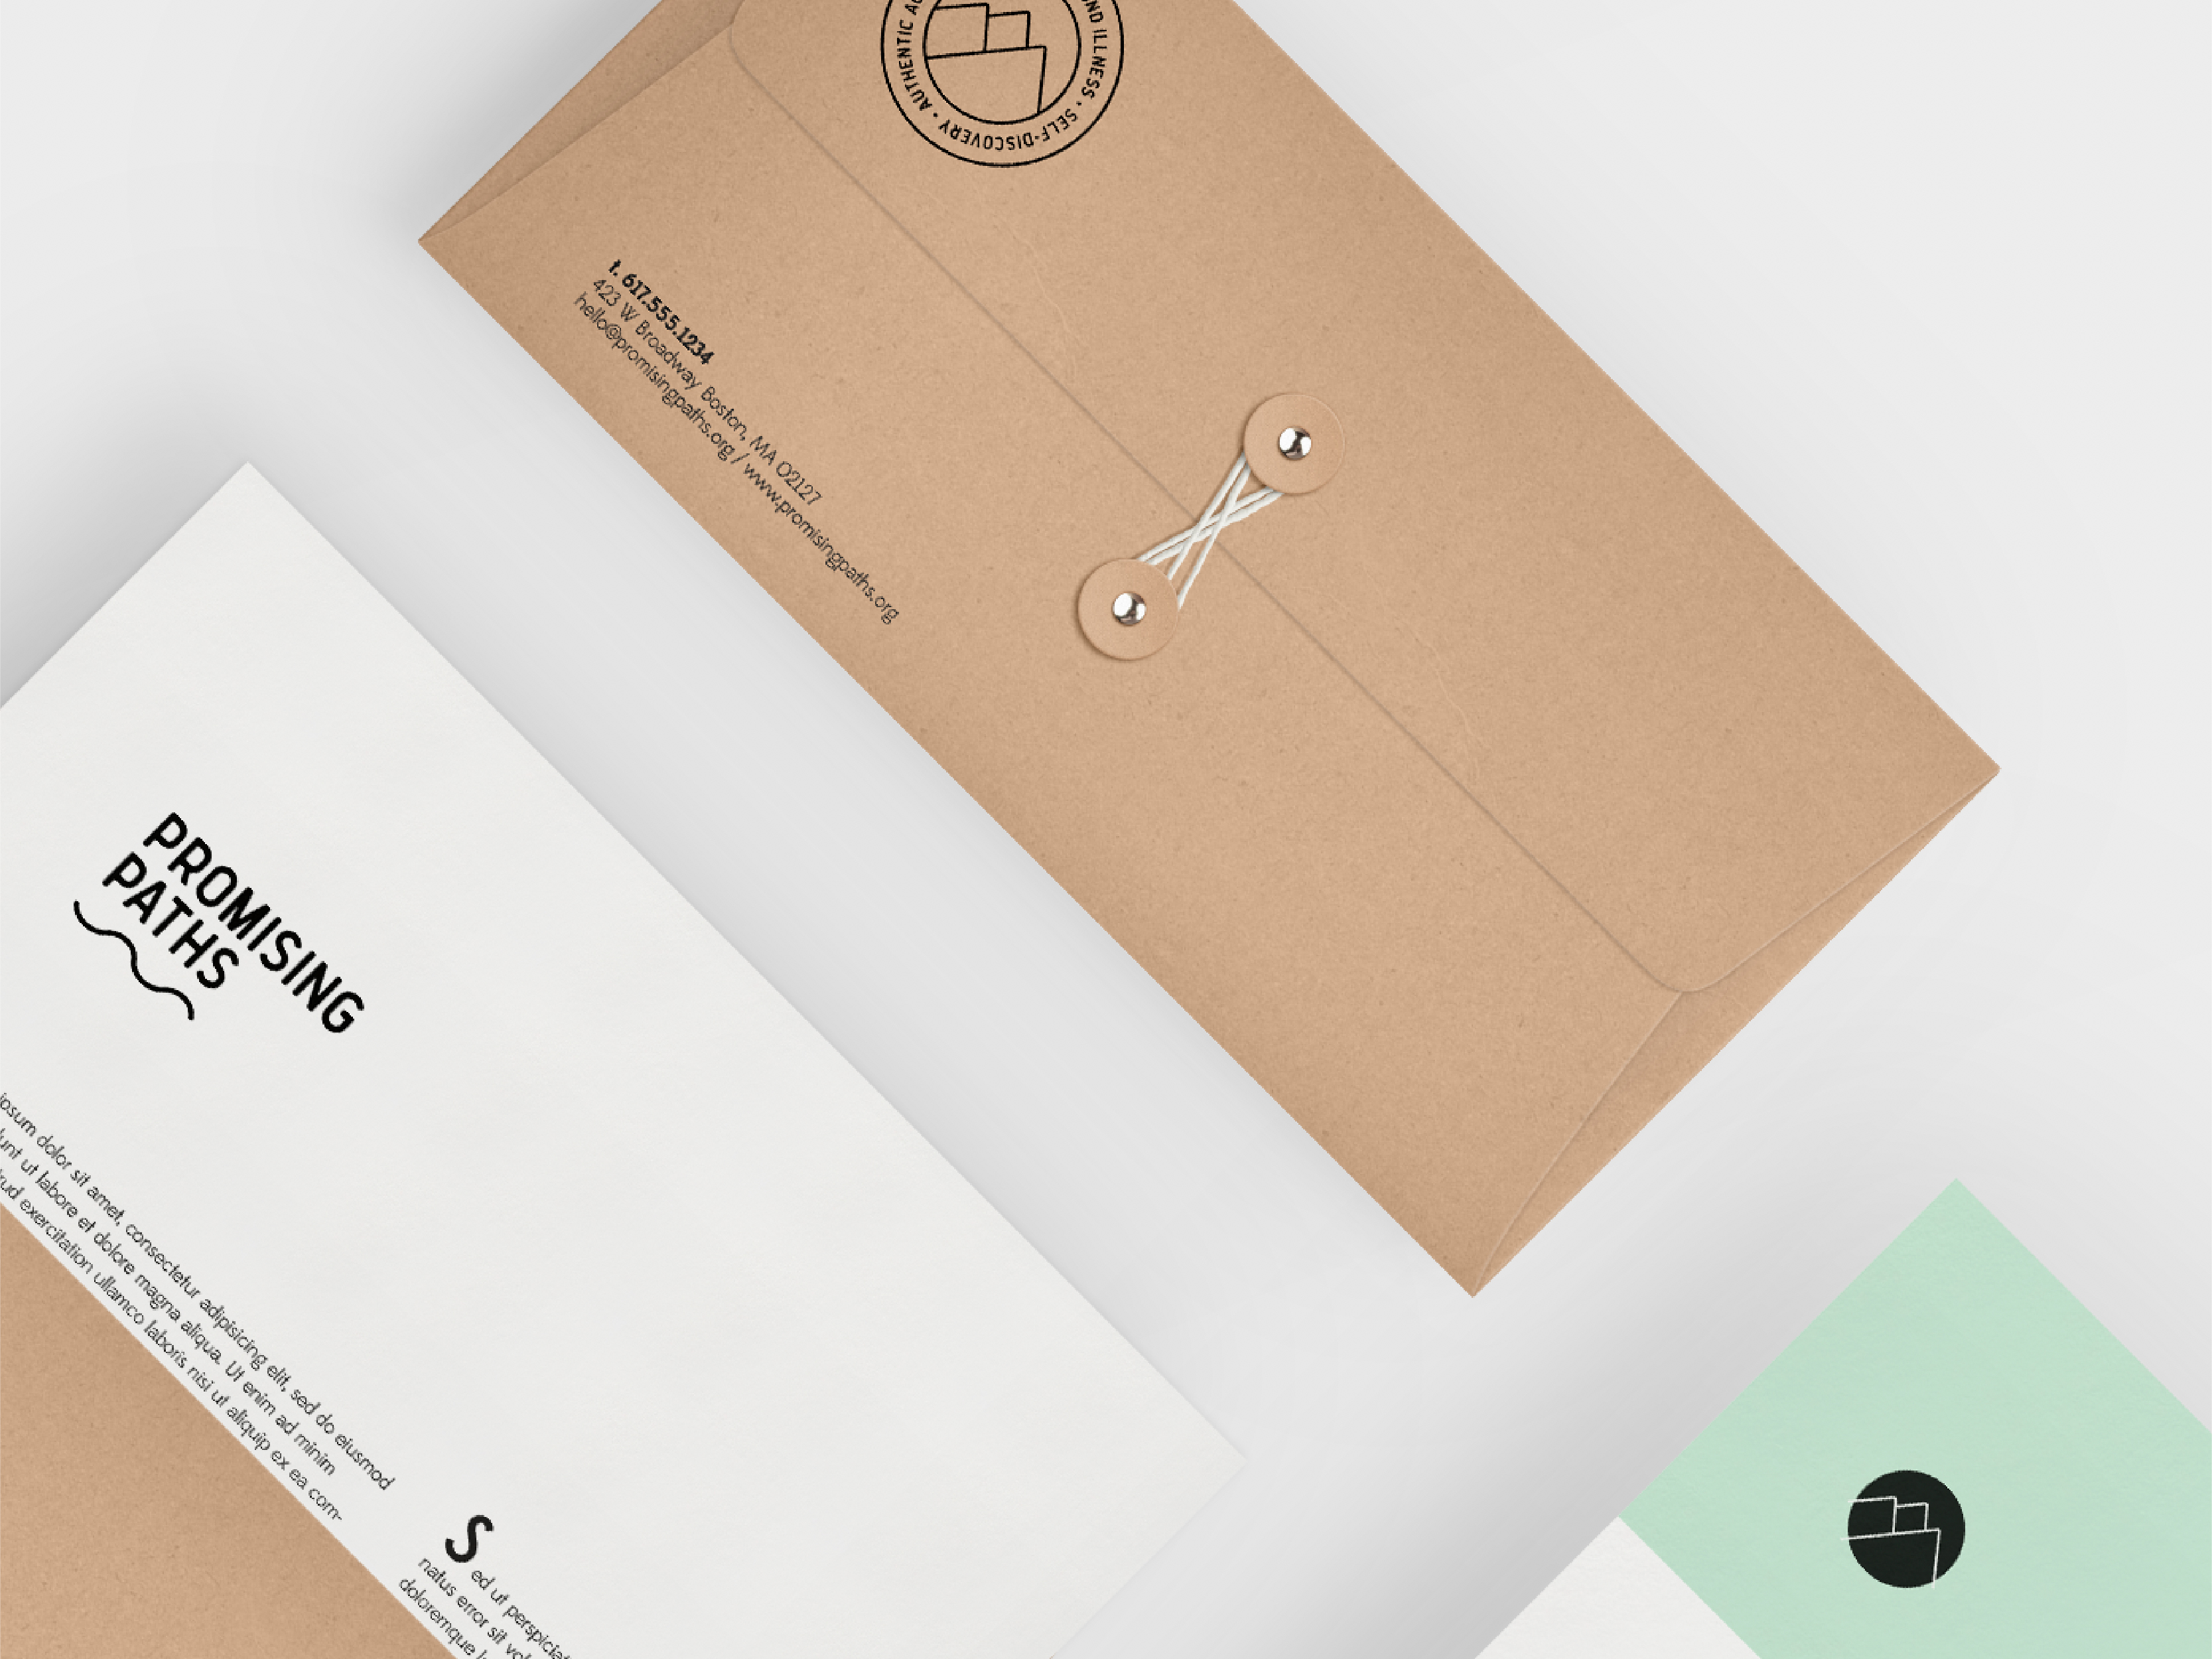 Promising Paths branding by JSGD